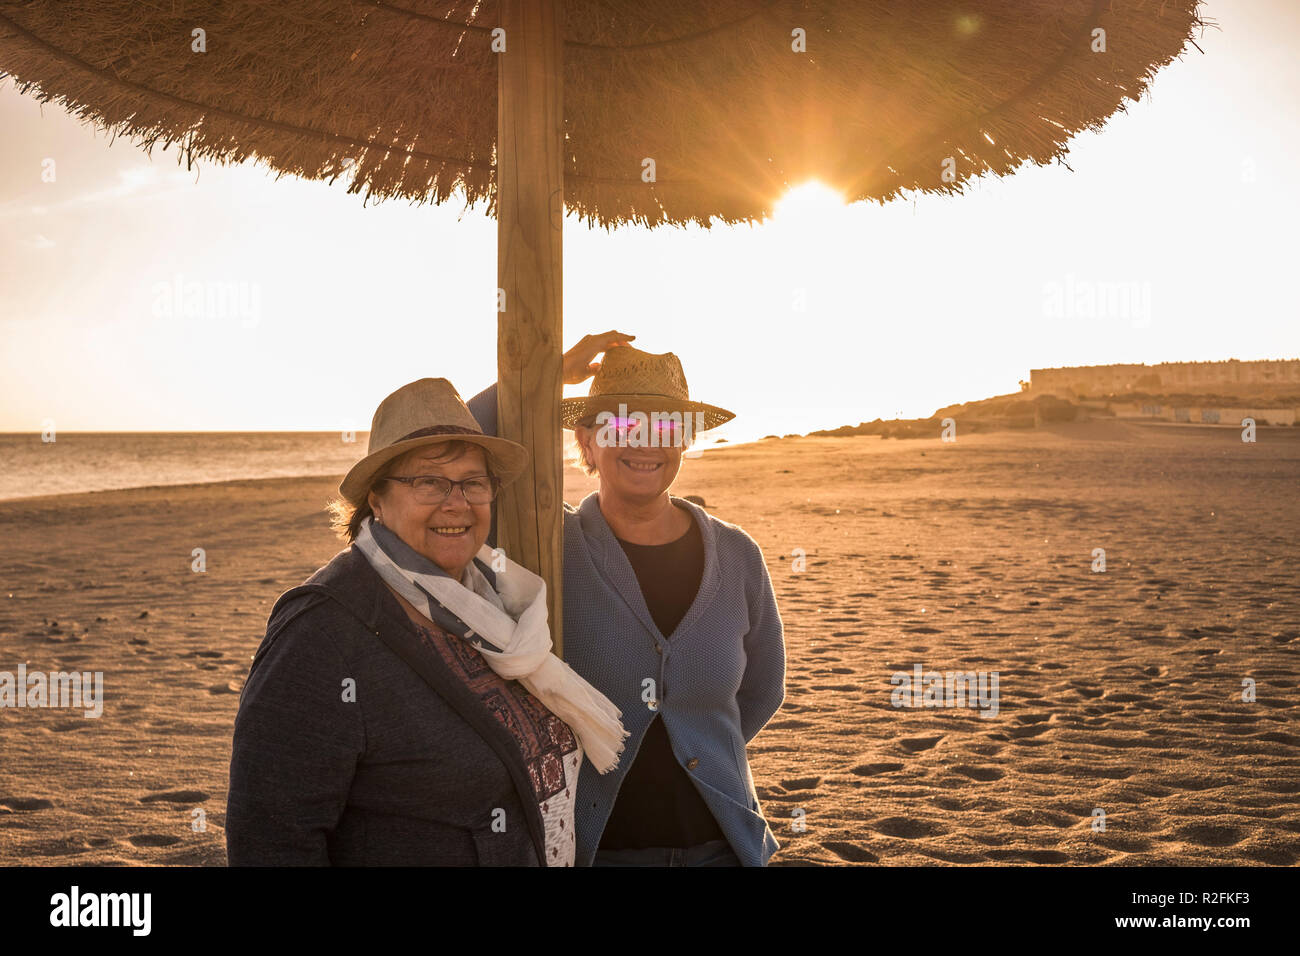 two senior women with hats on the beach under an umbrella. Sun Backlight of sunset. Leisure time in the summer in Tenerife. - Stock Image